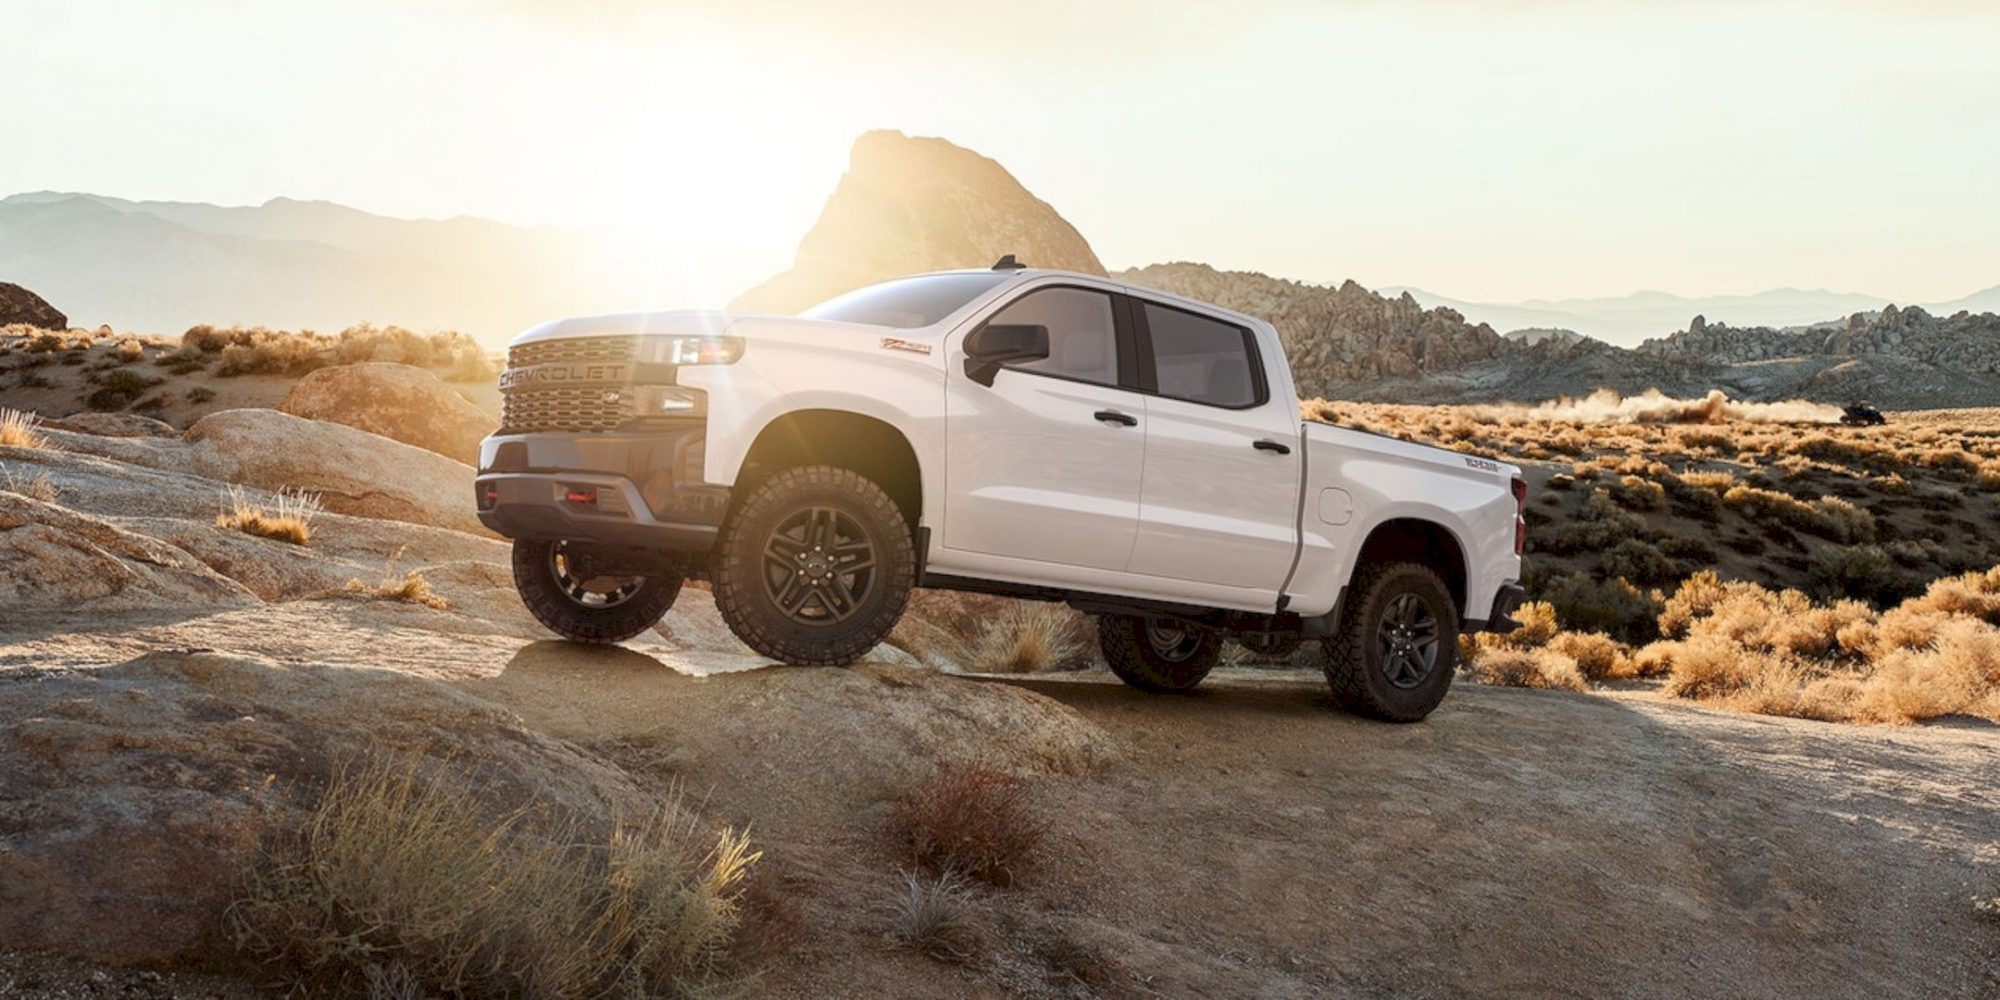 The All New 2019 Chevrolet Silverado: The Truck for Every Job